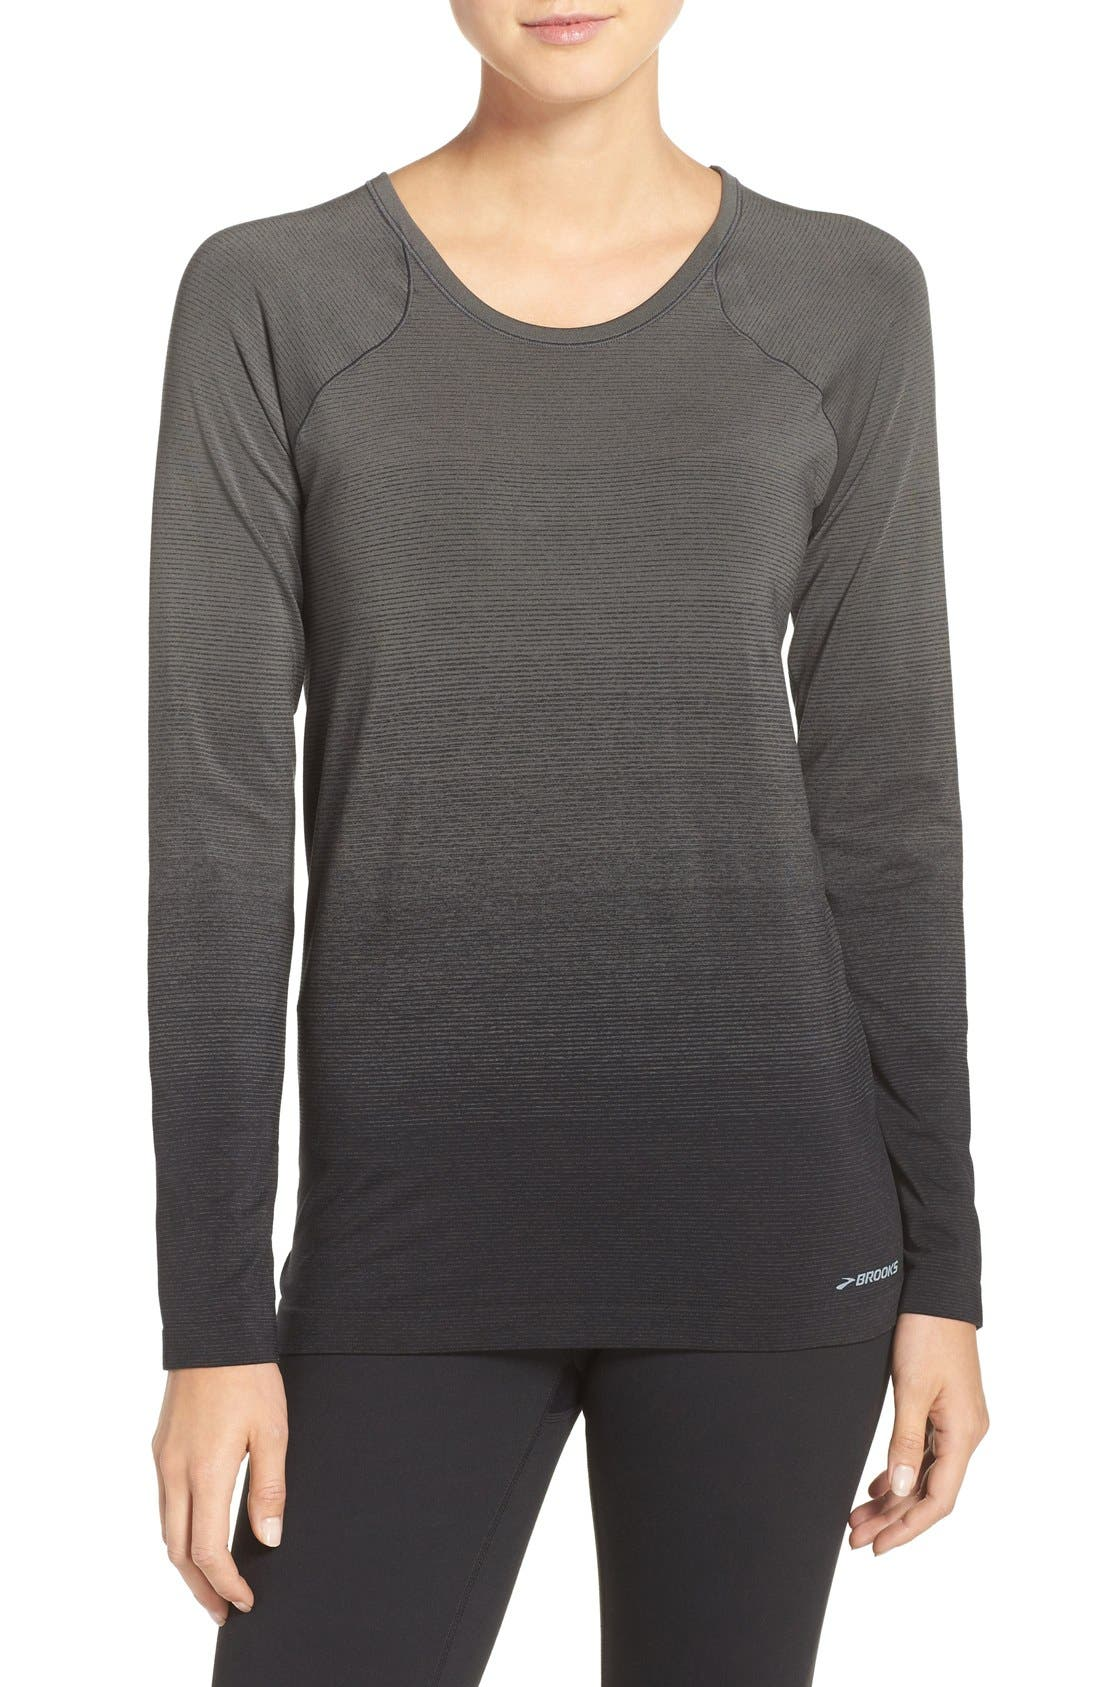 DriLayer Top,                         Main,                         color, Black/ Oxford